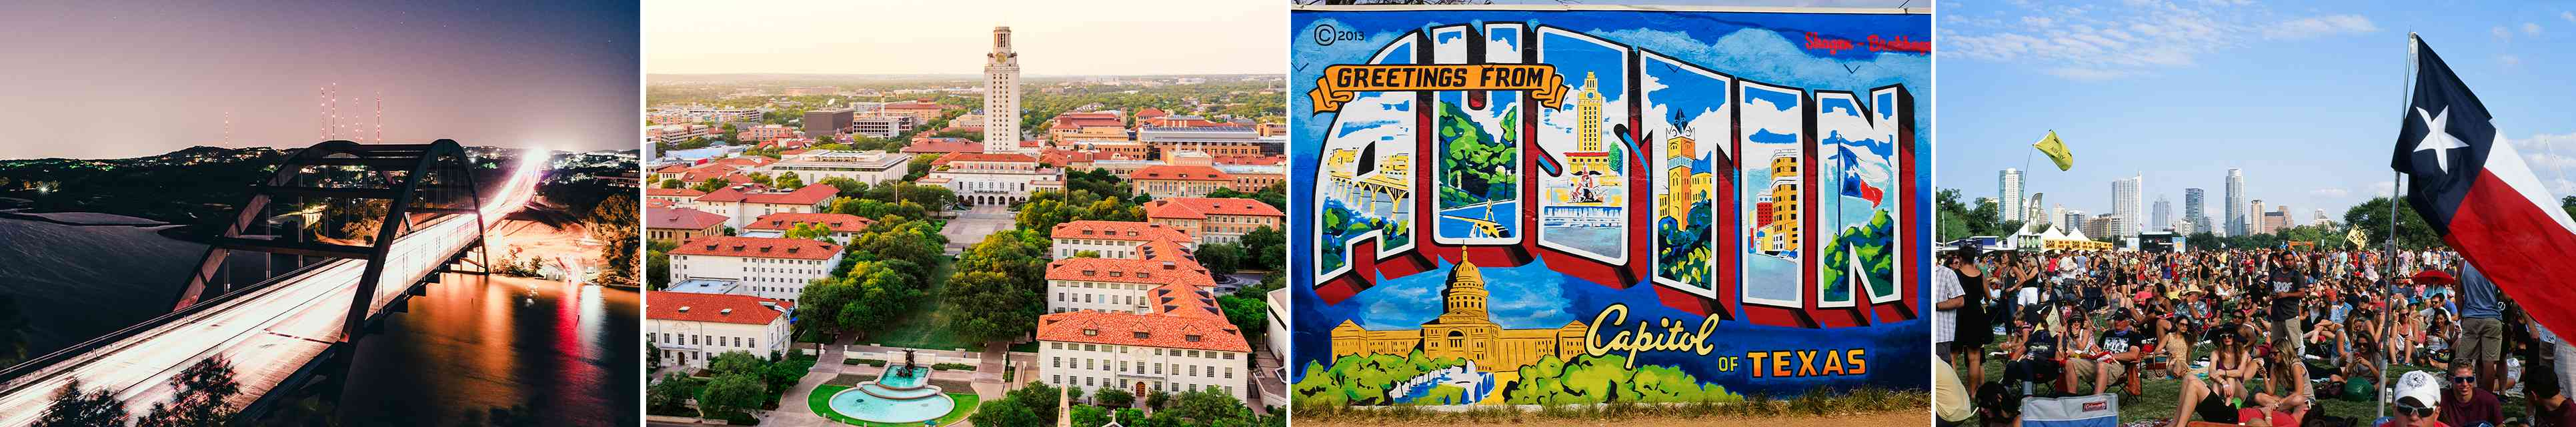 Collage of images including Pennybacker Bridge, University of Texas at Austin, Greetings from Austin wall mural, and a big crowd audience at the Austin City Limits music festival